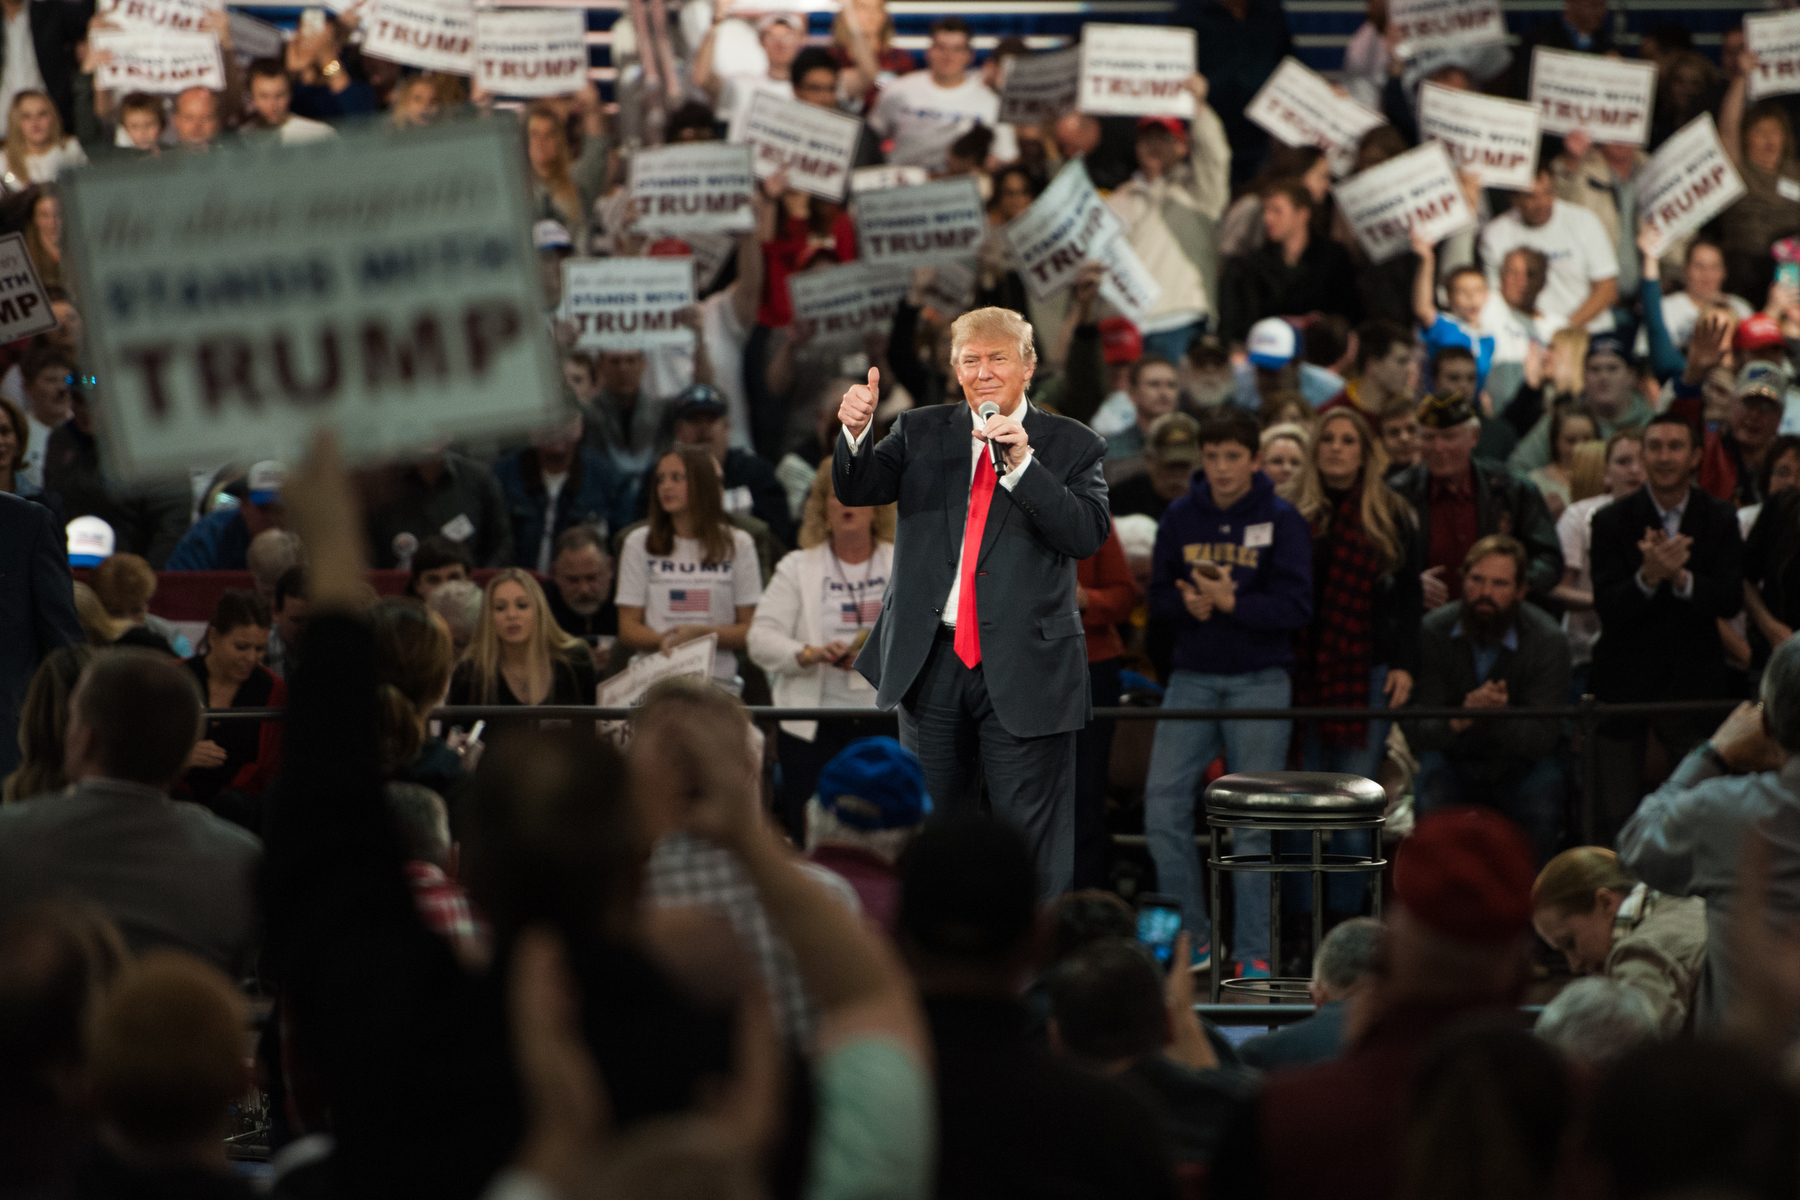 Donald Trump, president and chief executive of Trump Organization Inc. and 2016 Republican presidential candidate, thanks the crowd after speaking during a campaign event in Des Moines, Iowa, U.S., on Friday, Dec. 11, 2015. Mark Kauzlarich/Bloomberg